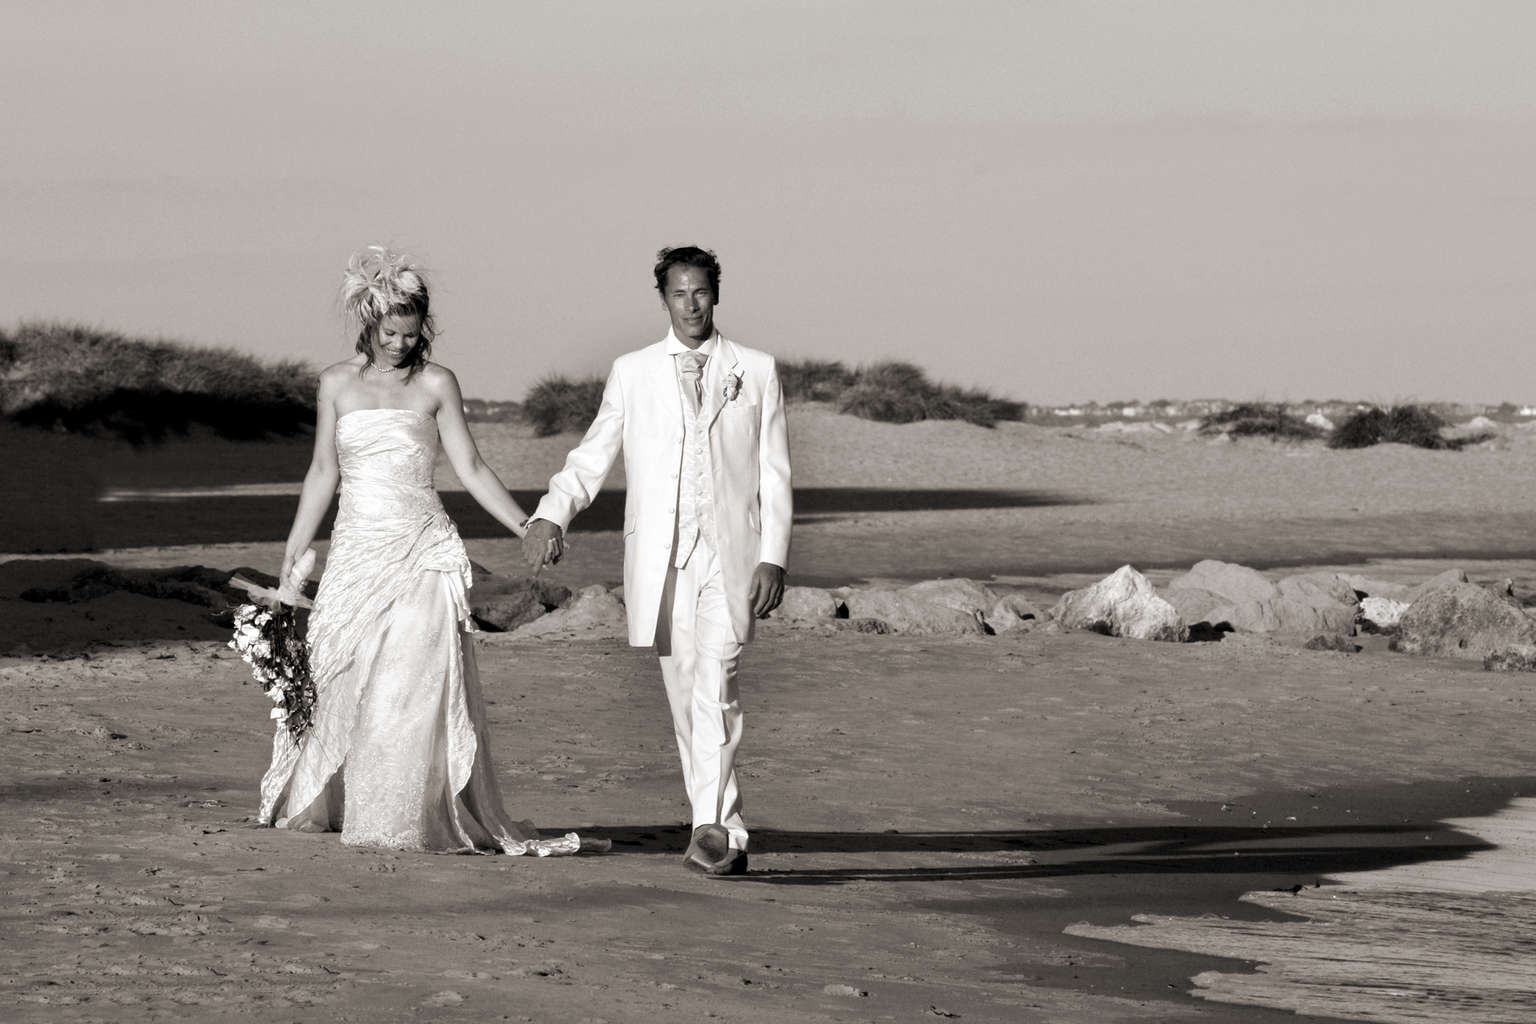 Wedding photo on Sandbanks Beach, Poole